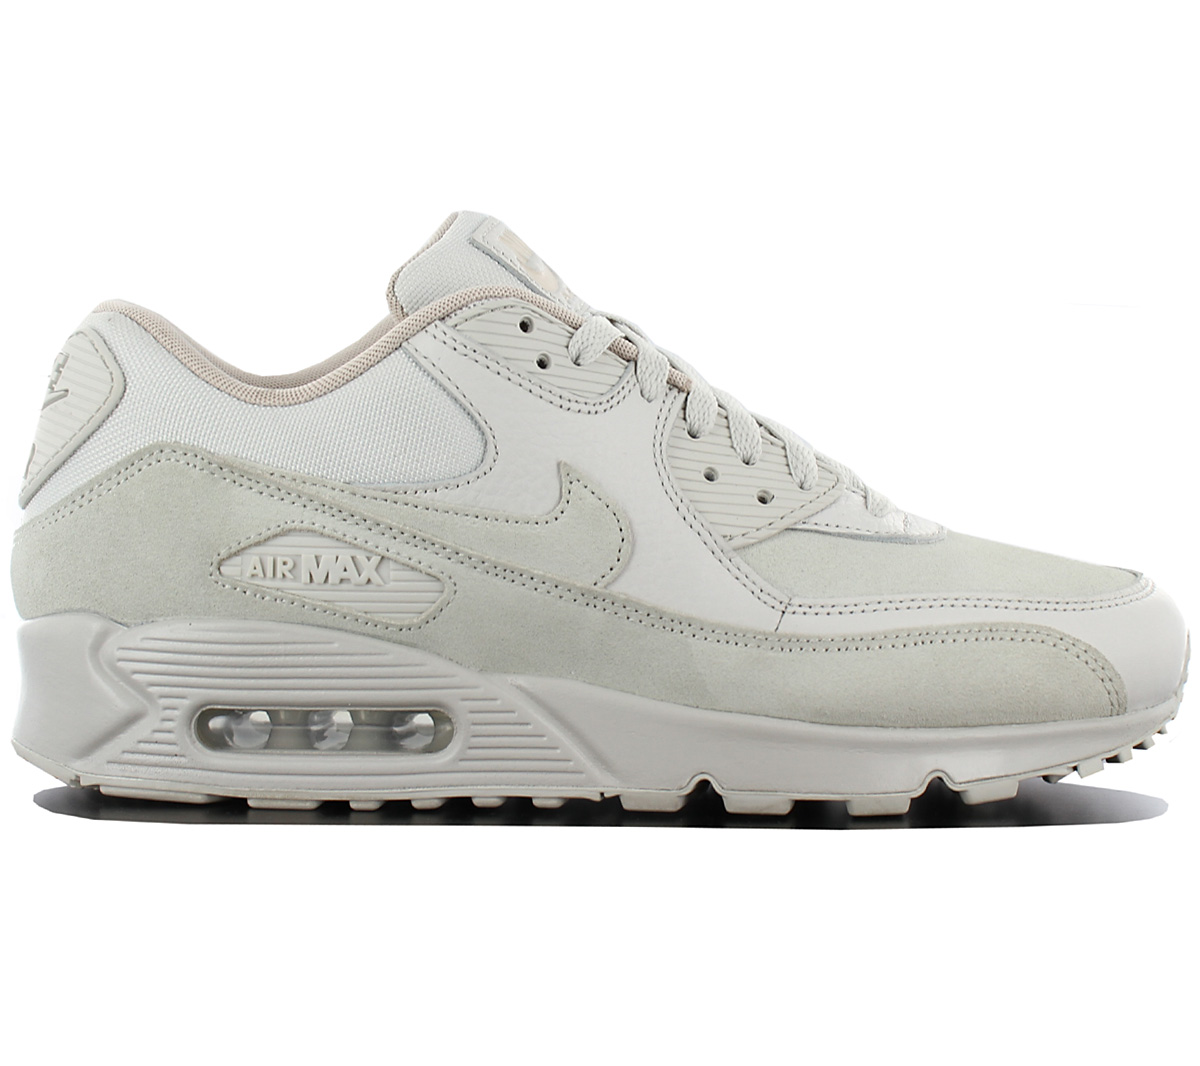 lowest price 79ac1 56f4d Nike Air Max 90 Leather Premium Mens Sneakers Shoes - Light